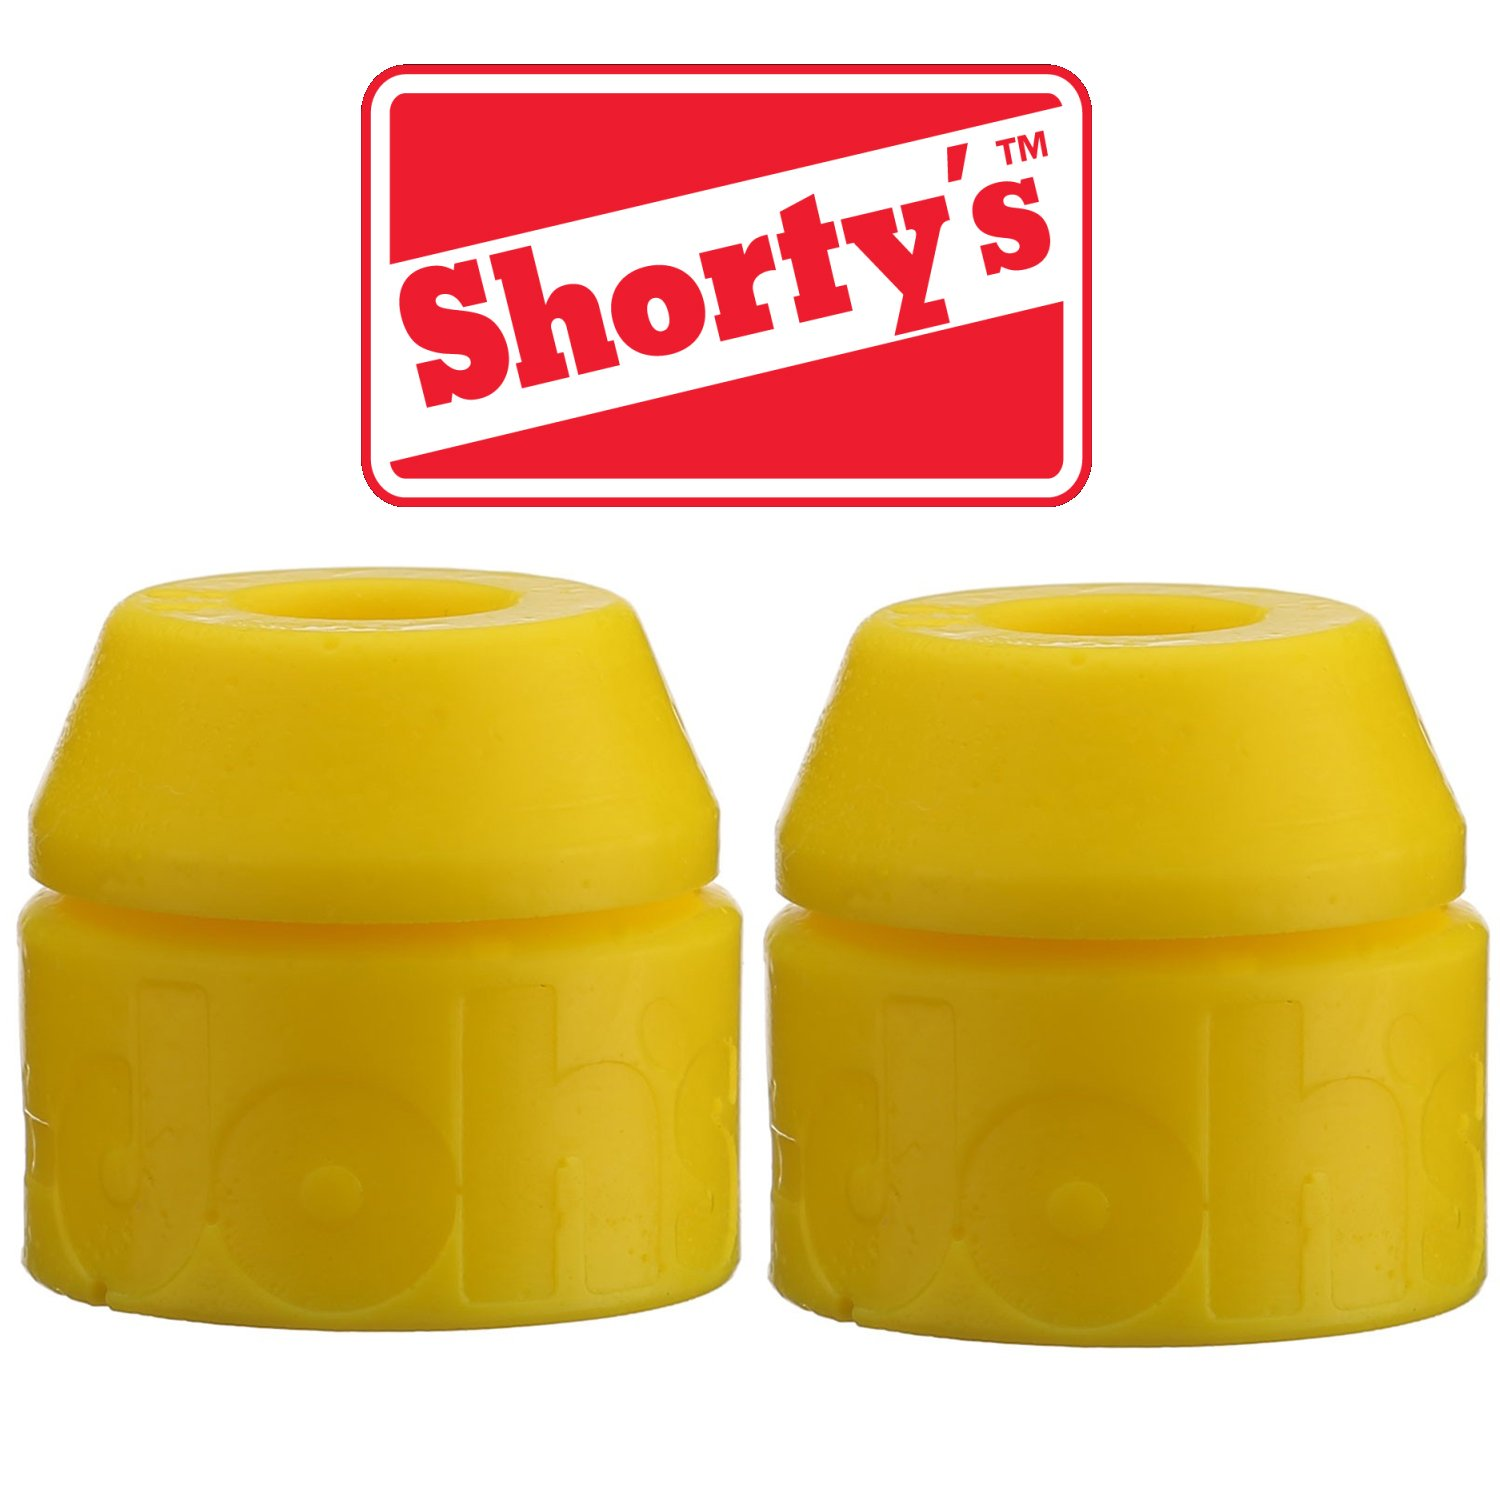 2 sets For Skateboards /& Longboards Shorty/'s Shortys Yellow Doh-Doh Bushings 92a Medium Soft